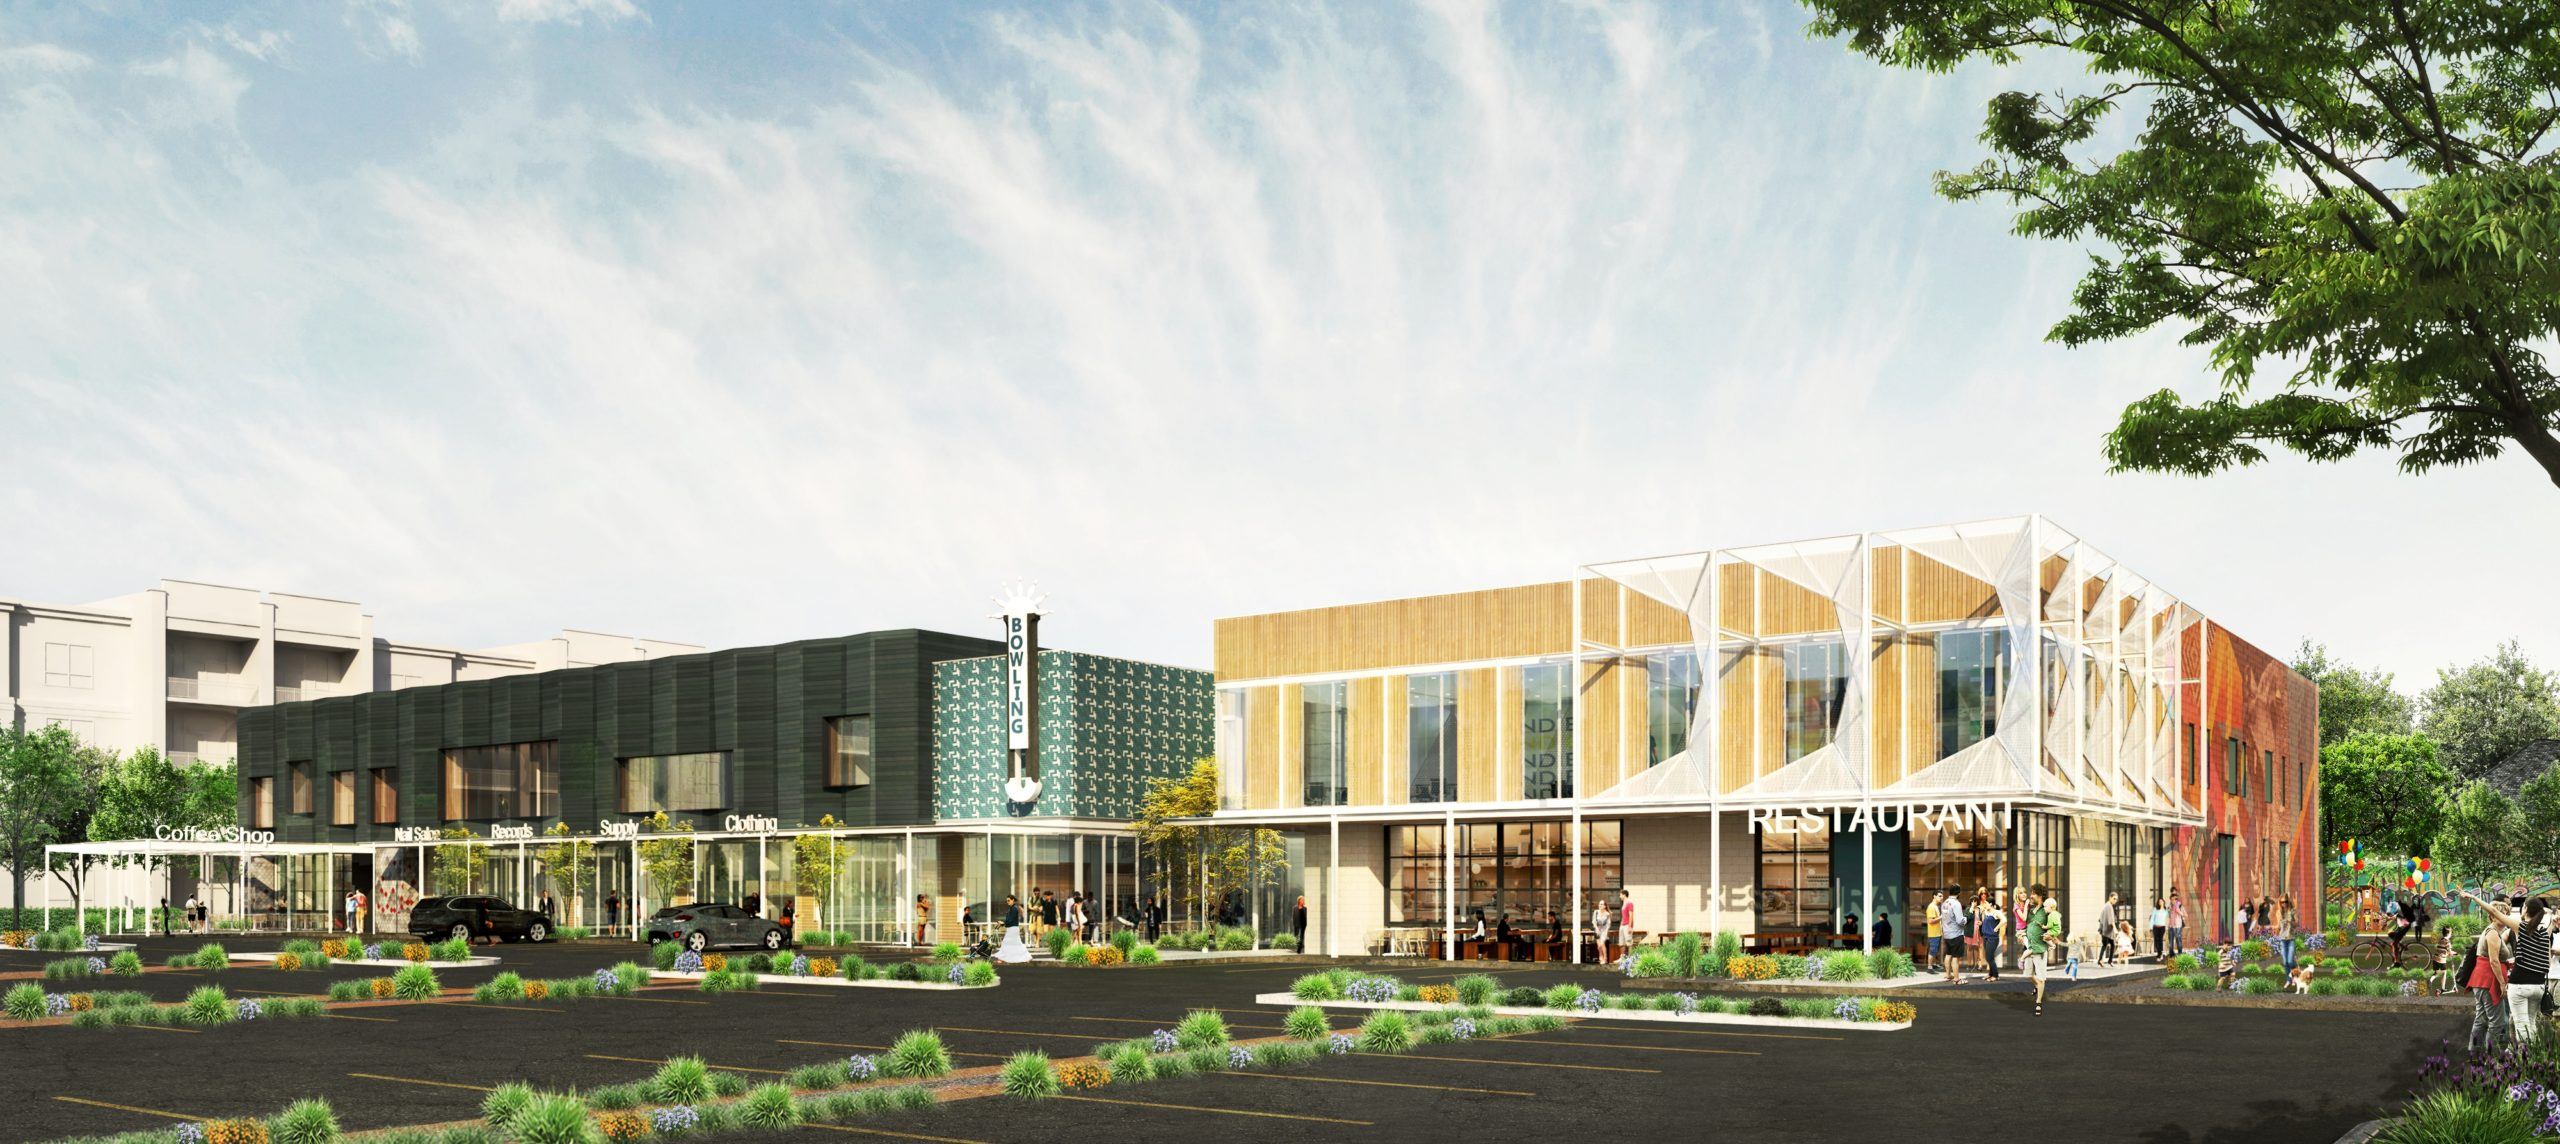 Southside Commons Rendering